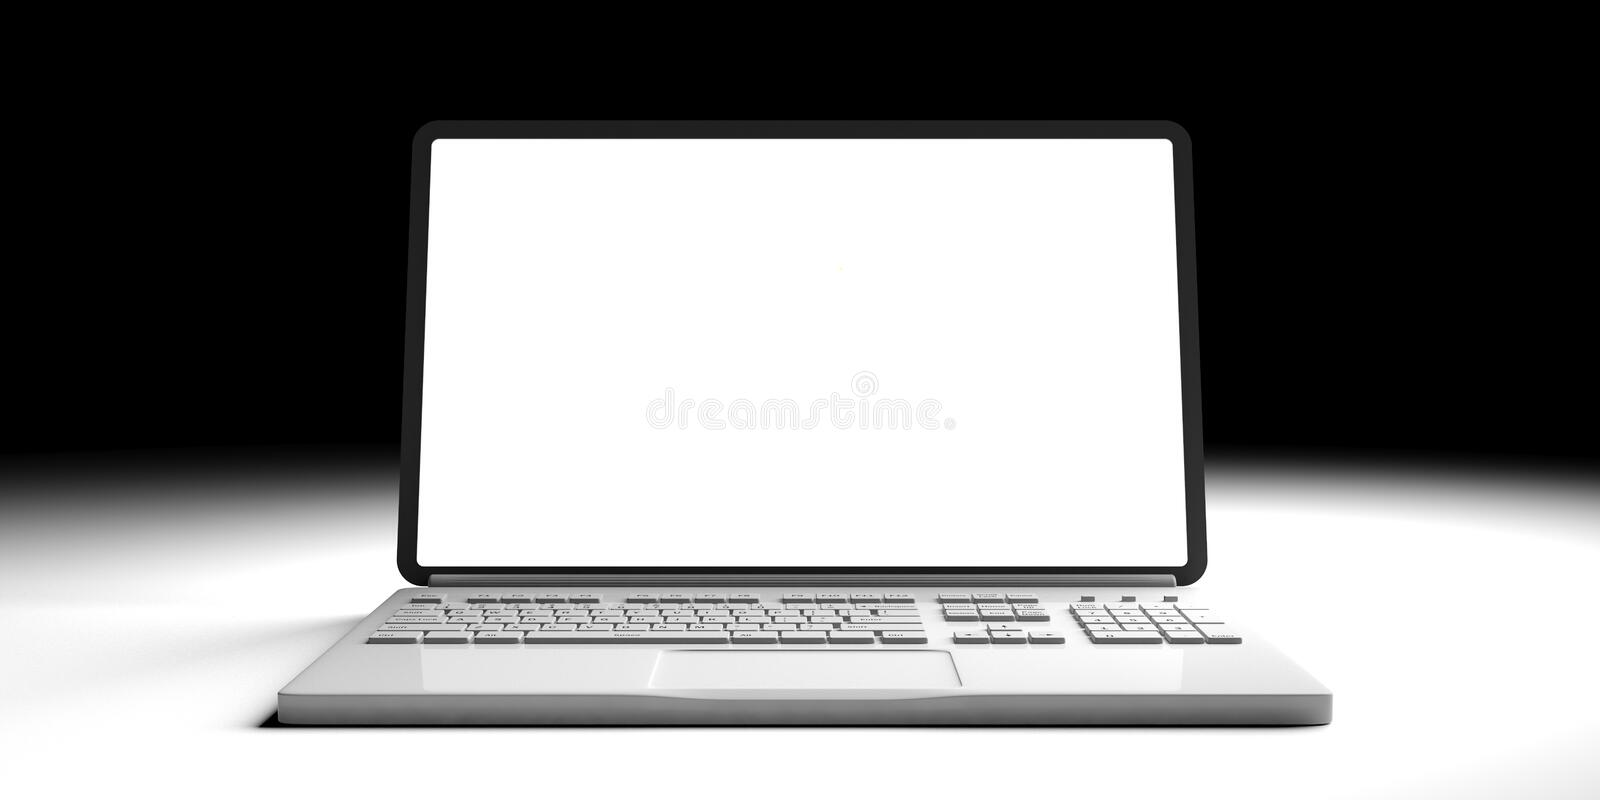 Computer laptop with blank screen isolated on white and black background, front view. 3d illustration vector illustration